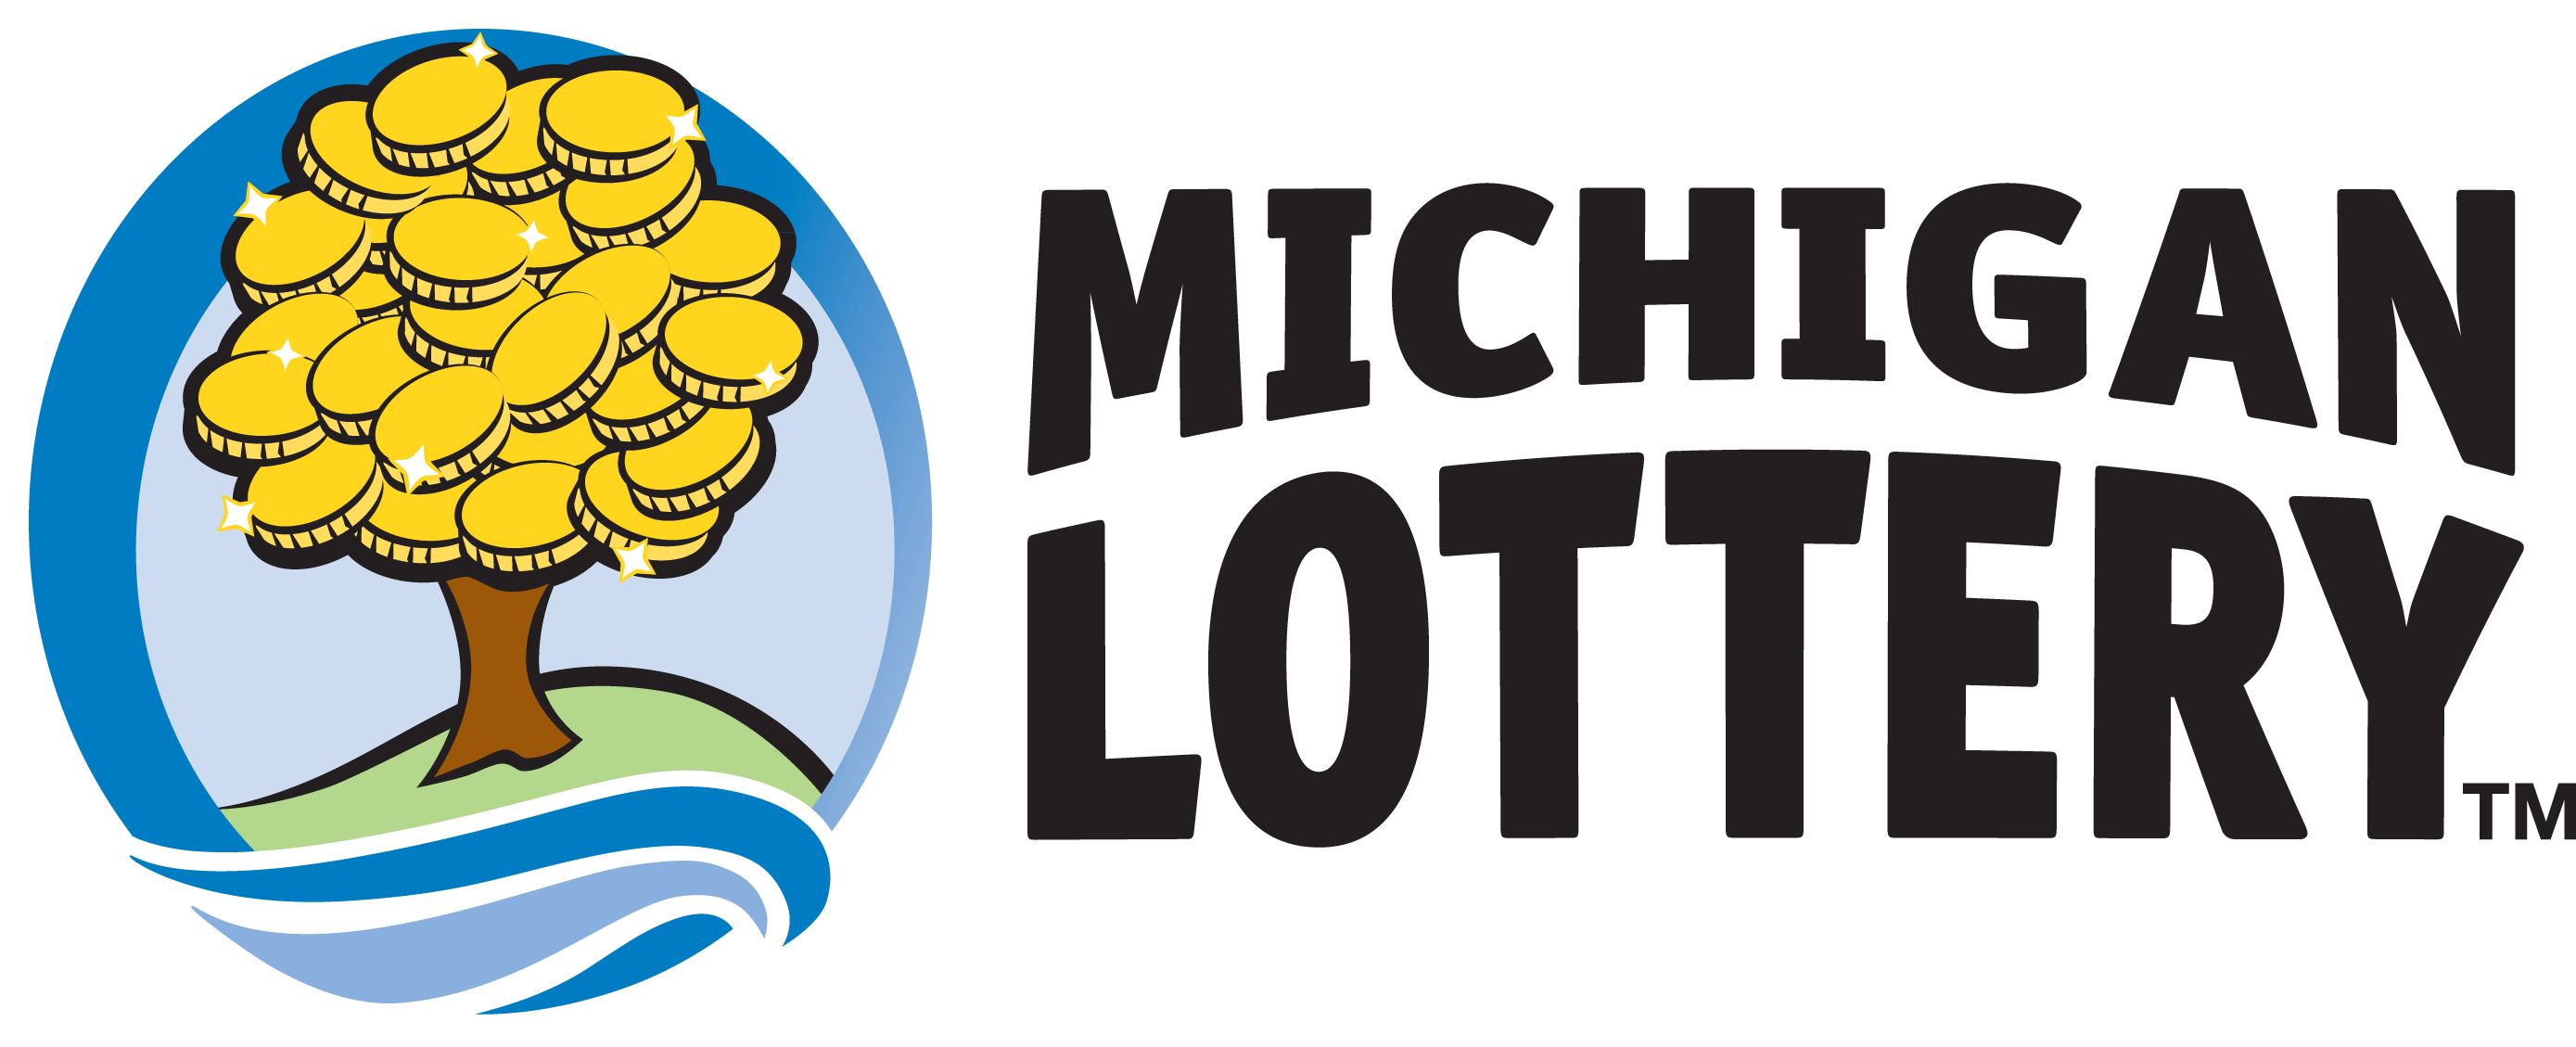 New Replay Feature From The Michigan Lottery Adds Convenience For Players Michigan Lottery Connect Michigan (mi) lottery results (winning numbers) and prize payouts for daily 3, daily 4, fantasy 5, lotto 47, lucky for life, powerball, mega millions, keno, poker. michigan lottery